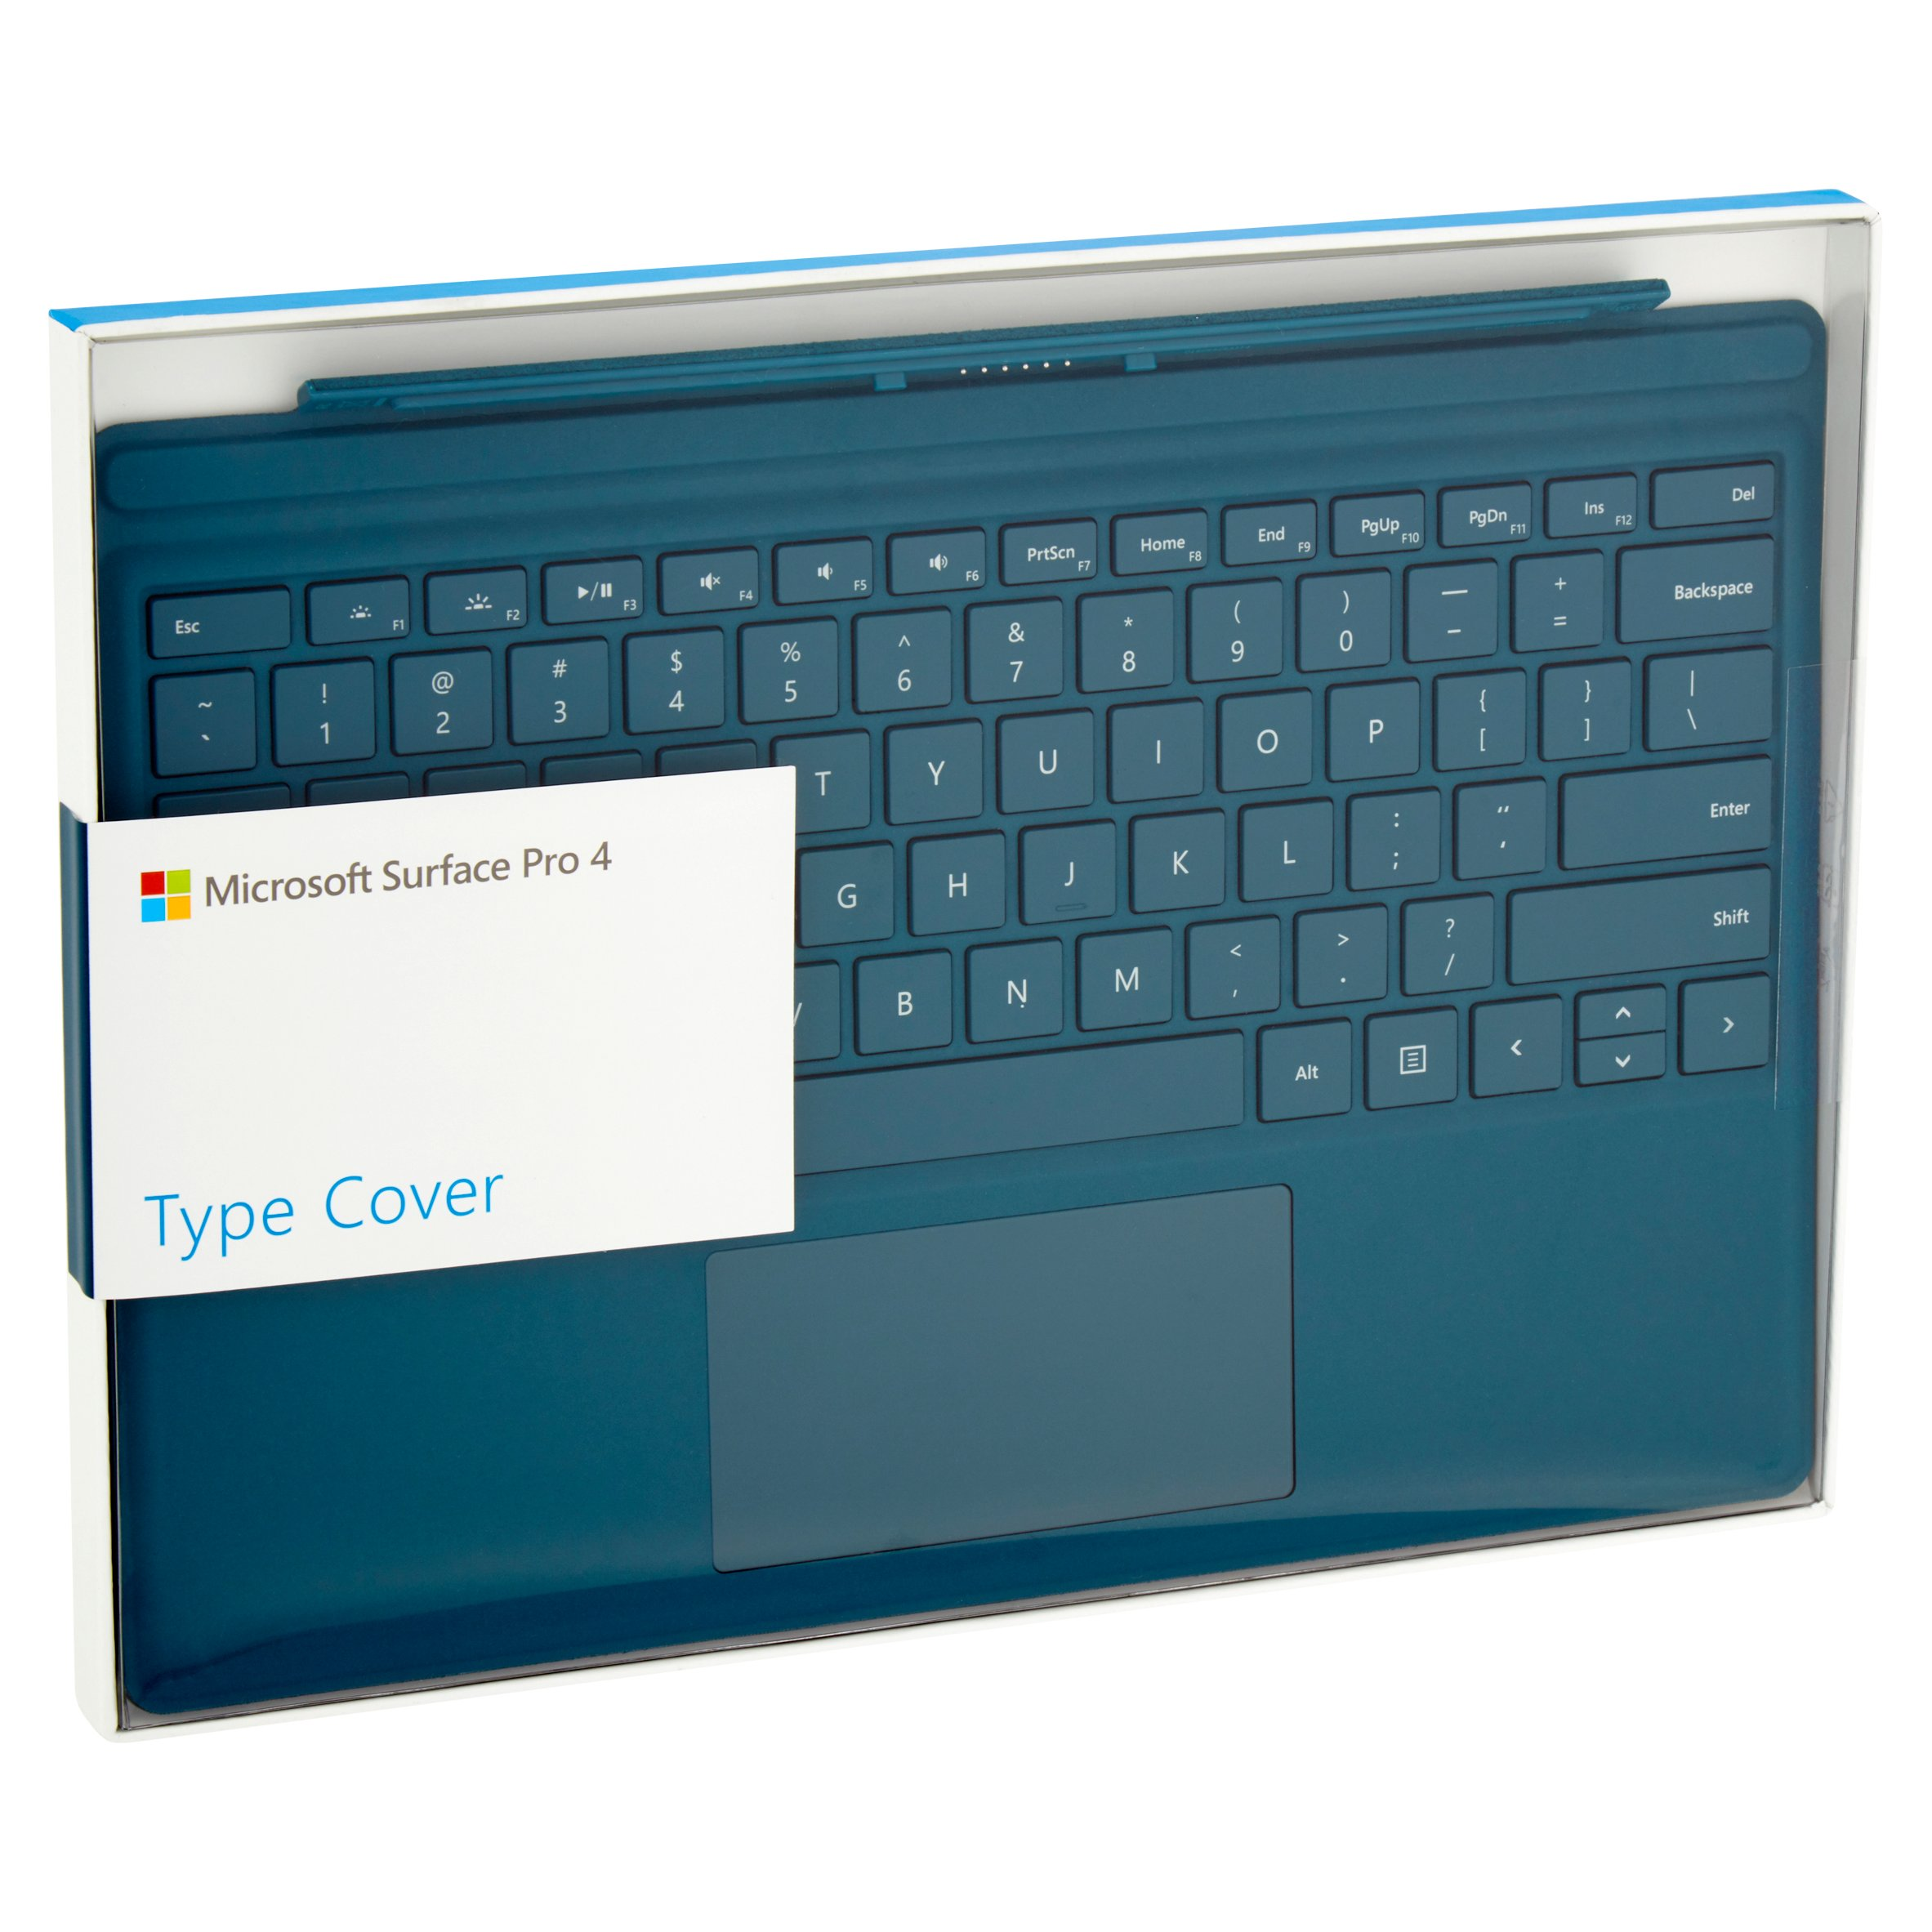 Microsoft Surface Pro 4 Pro 3 Type cover  Backlit Keyboard 1725 QC7-00001